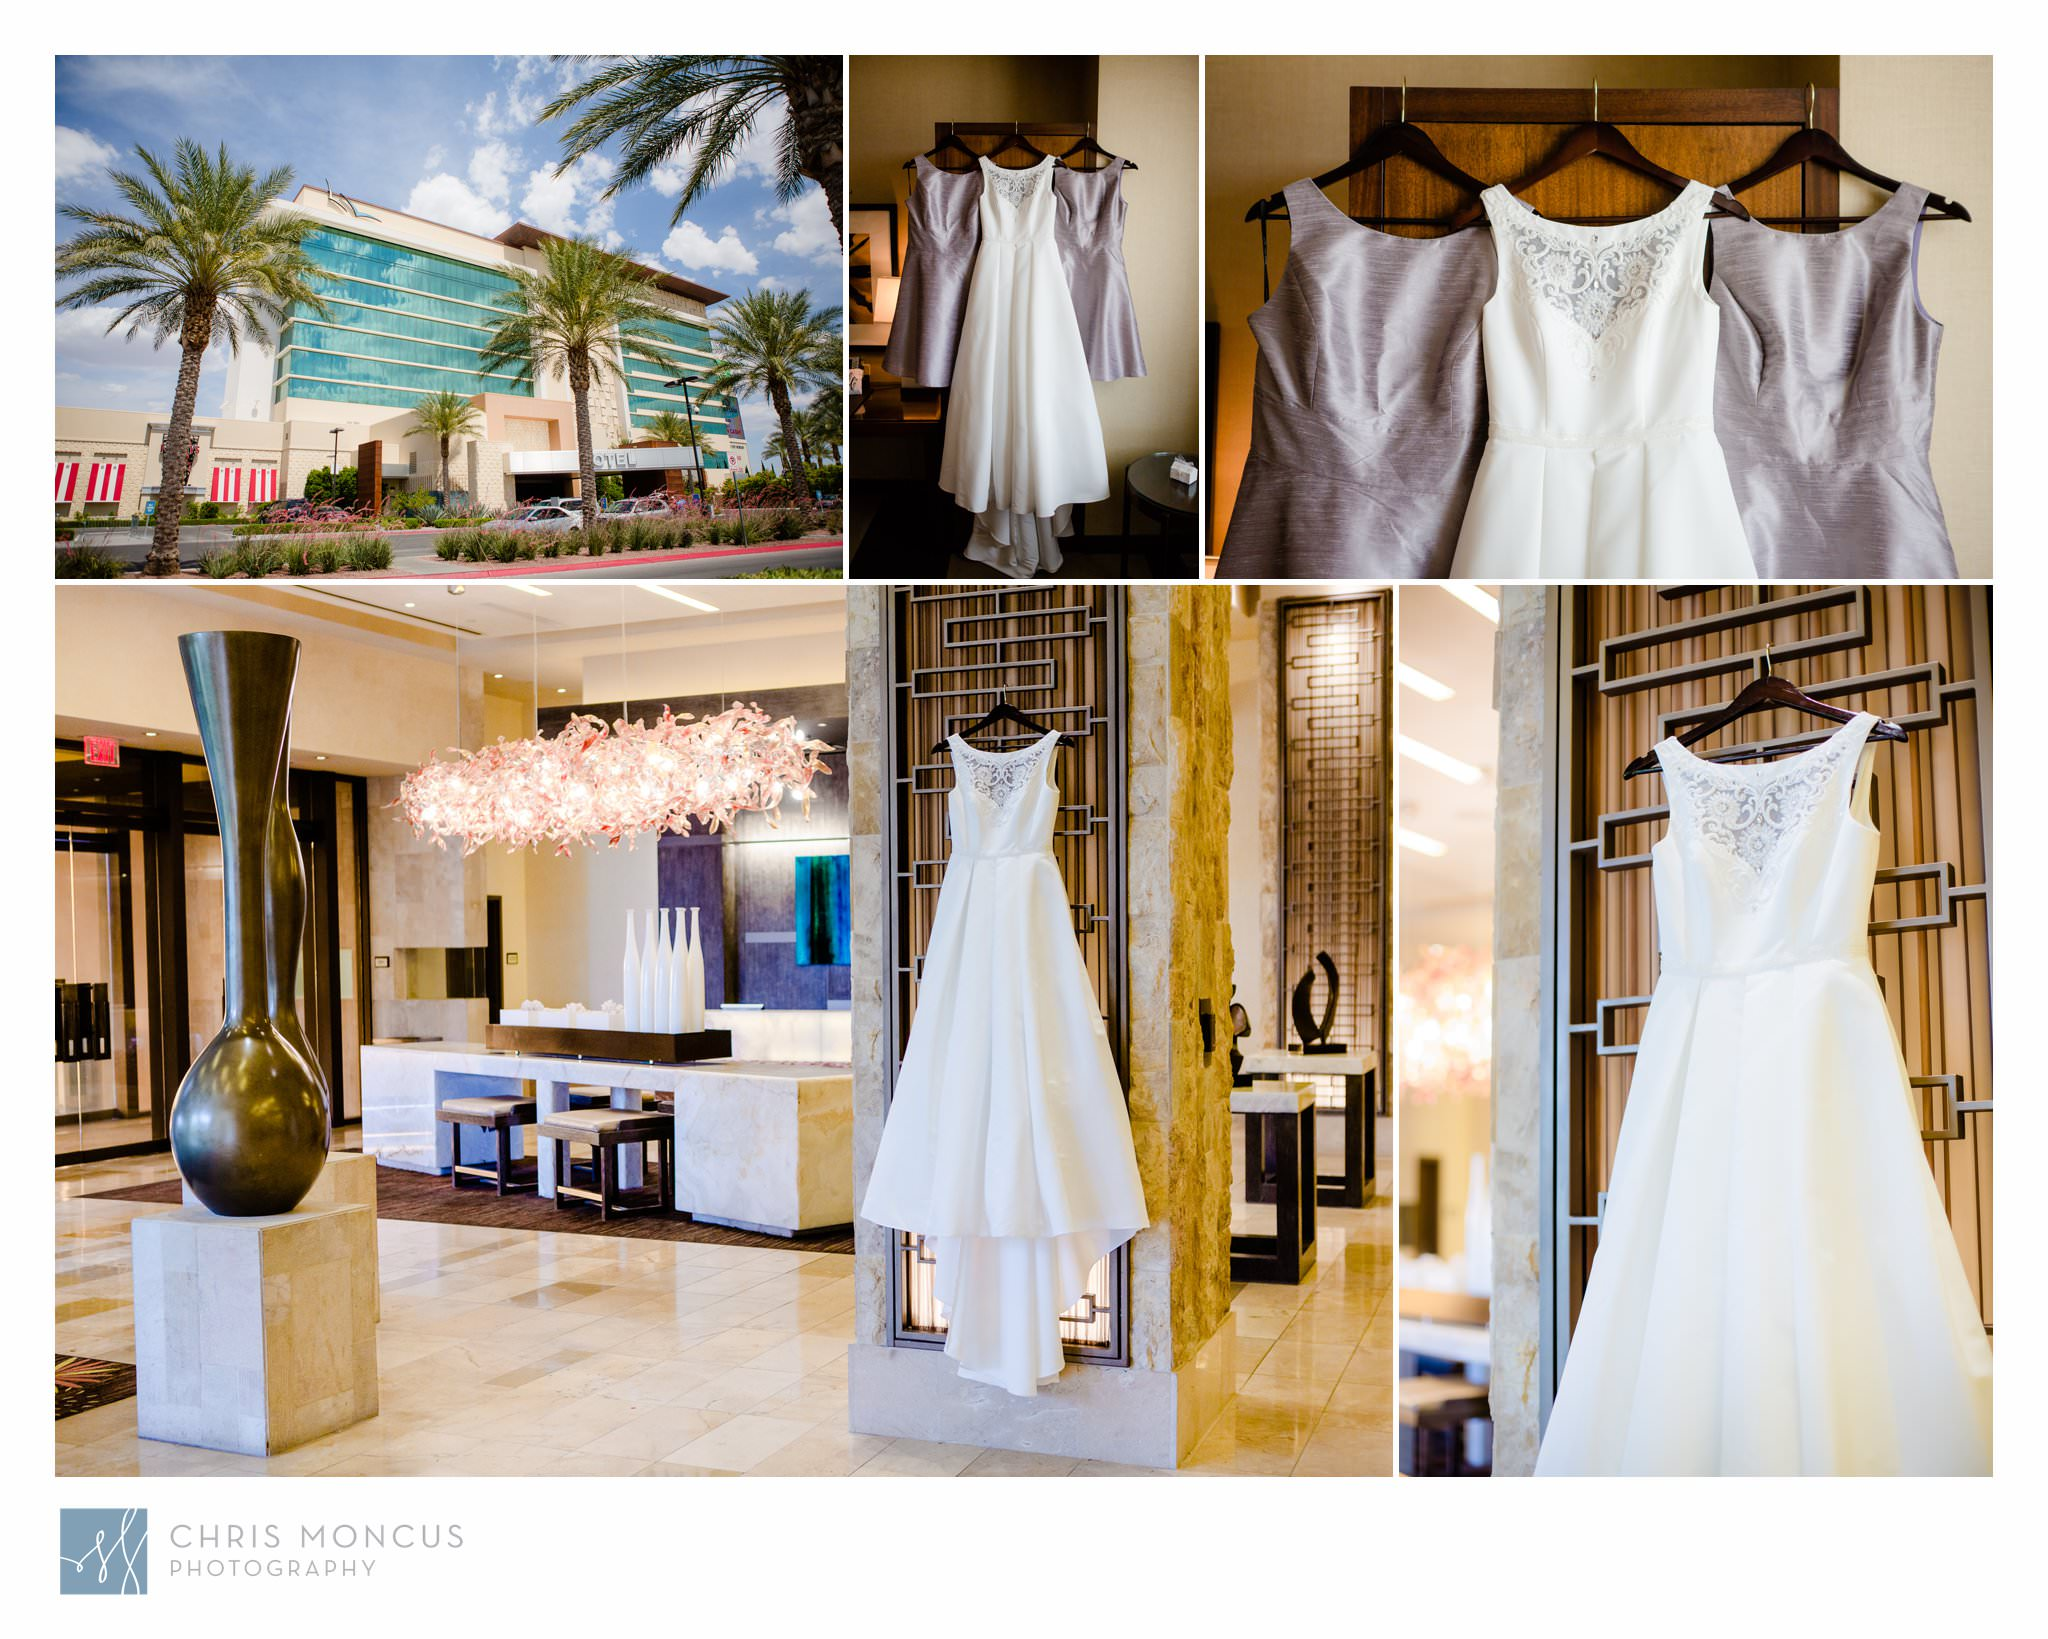 Wedding Dresses in Aliante Casino Lobby Las Vegas